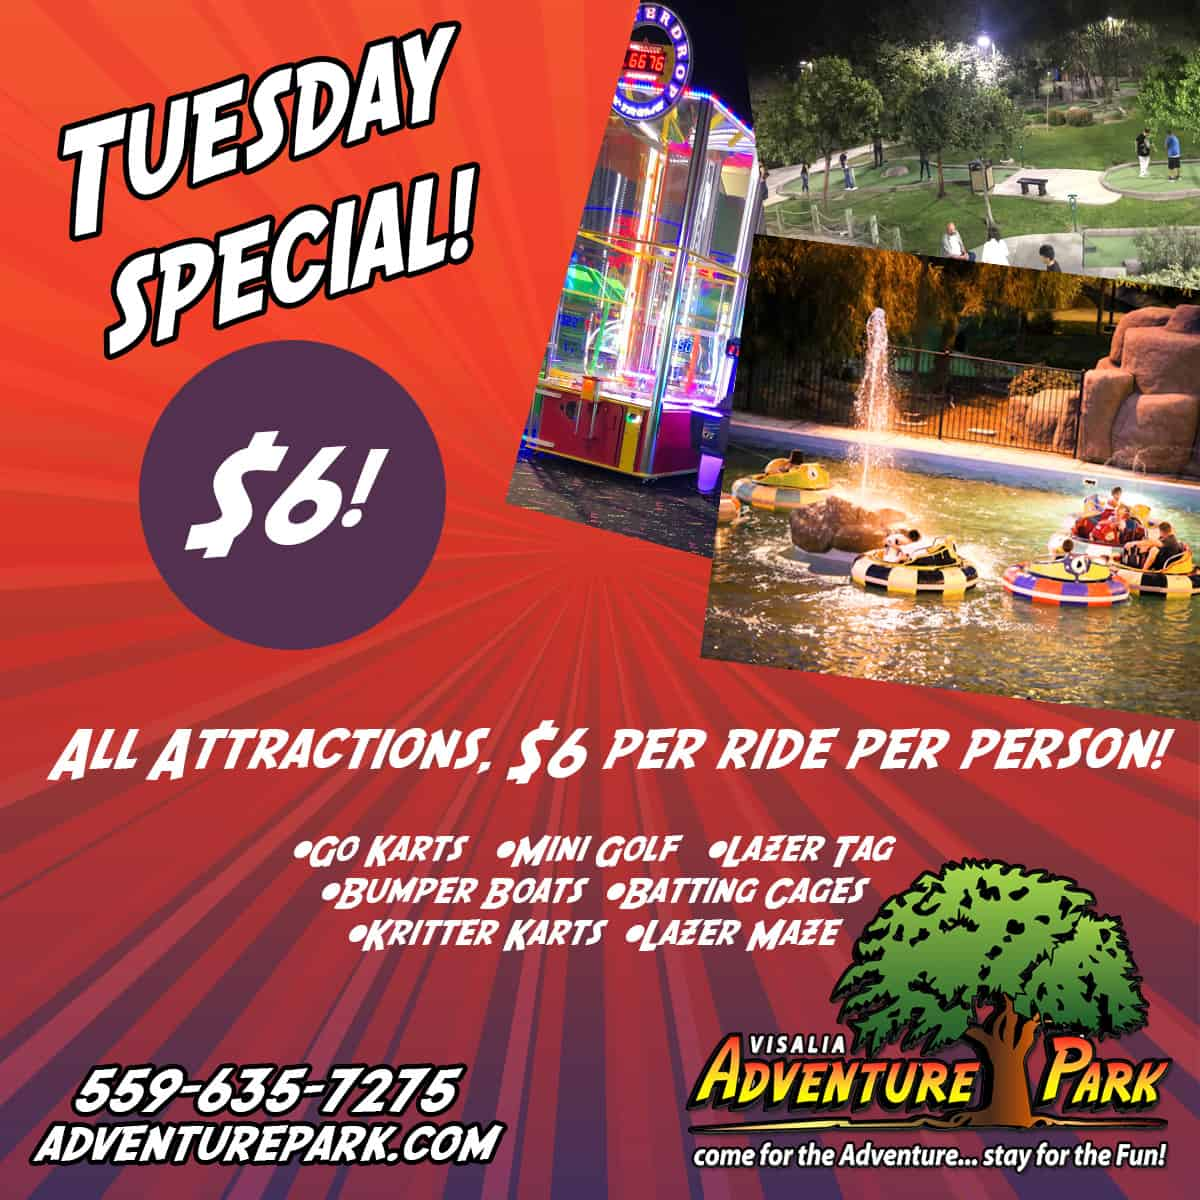 Tuesday Deals At Adventure Park In Visalia